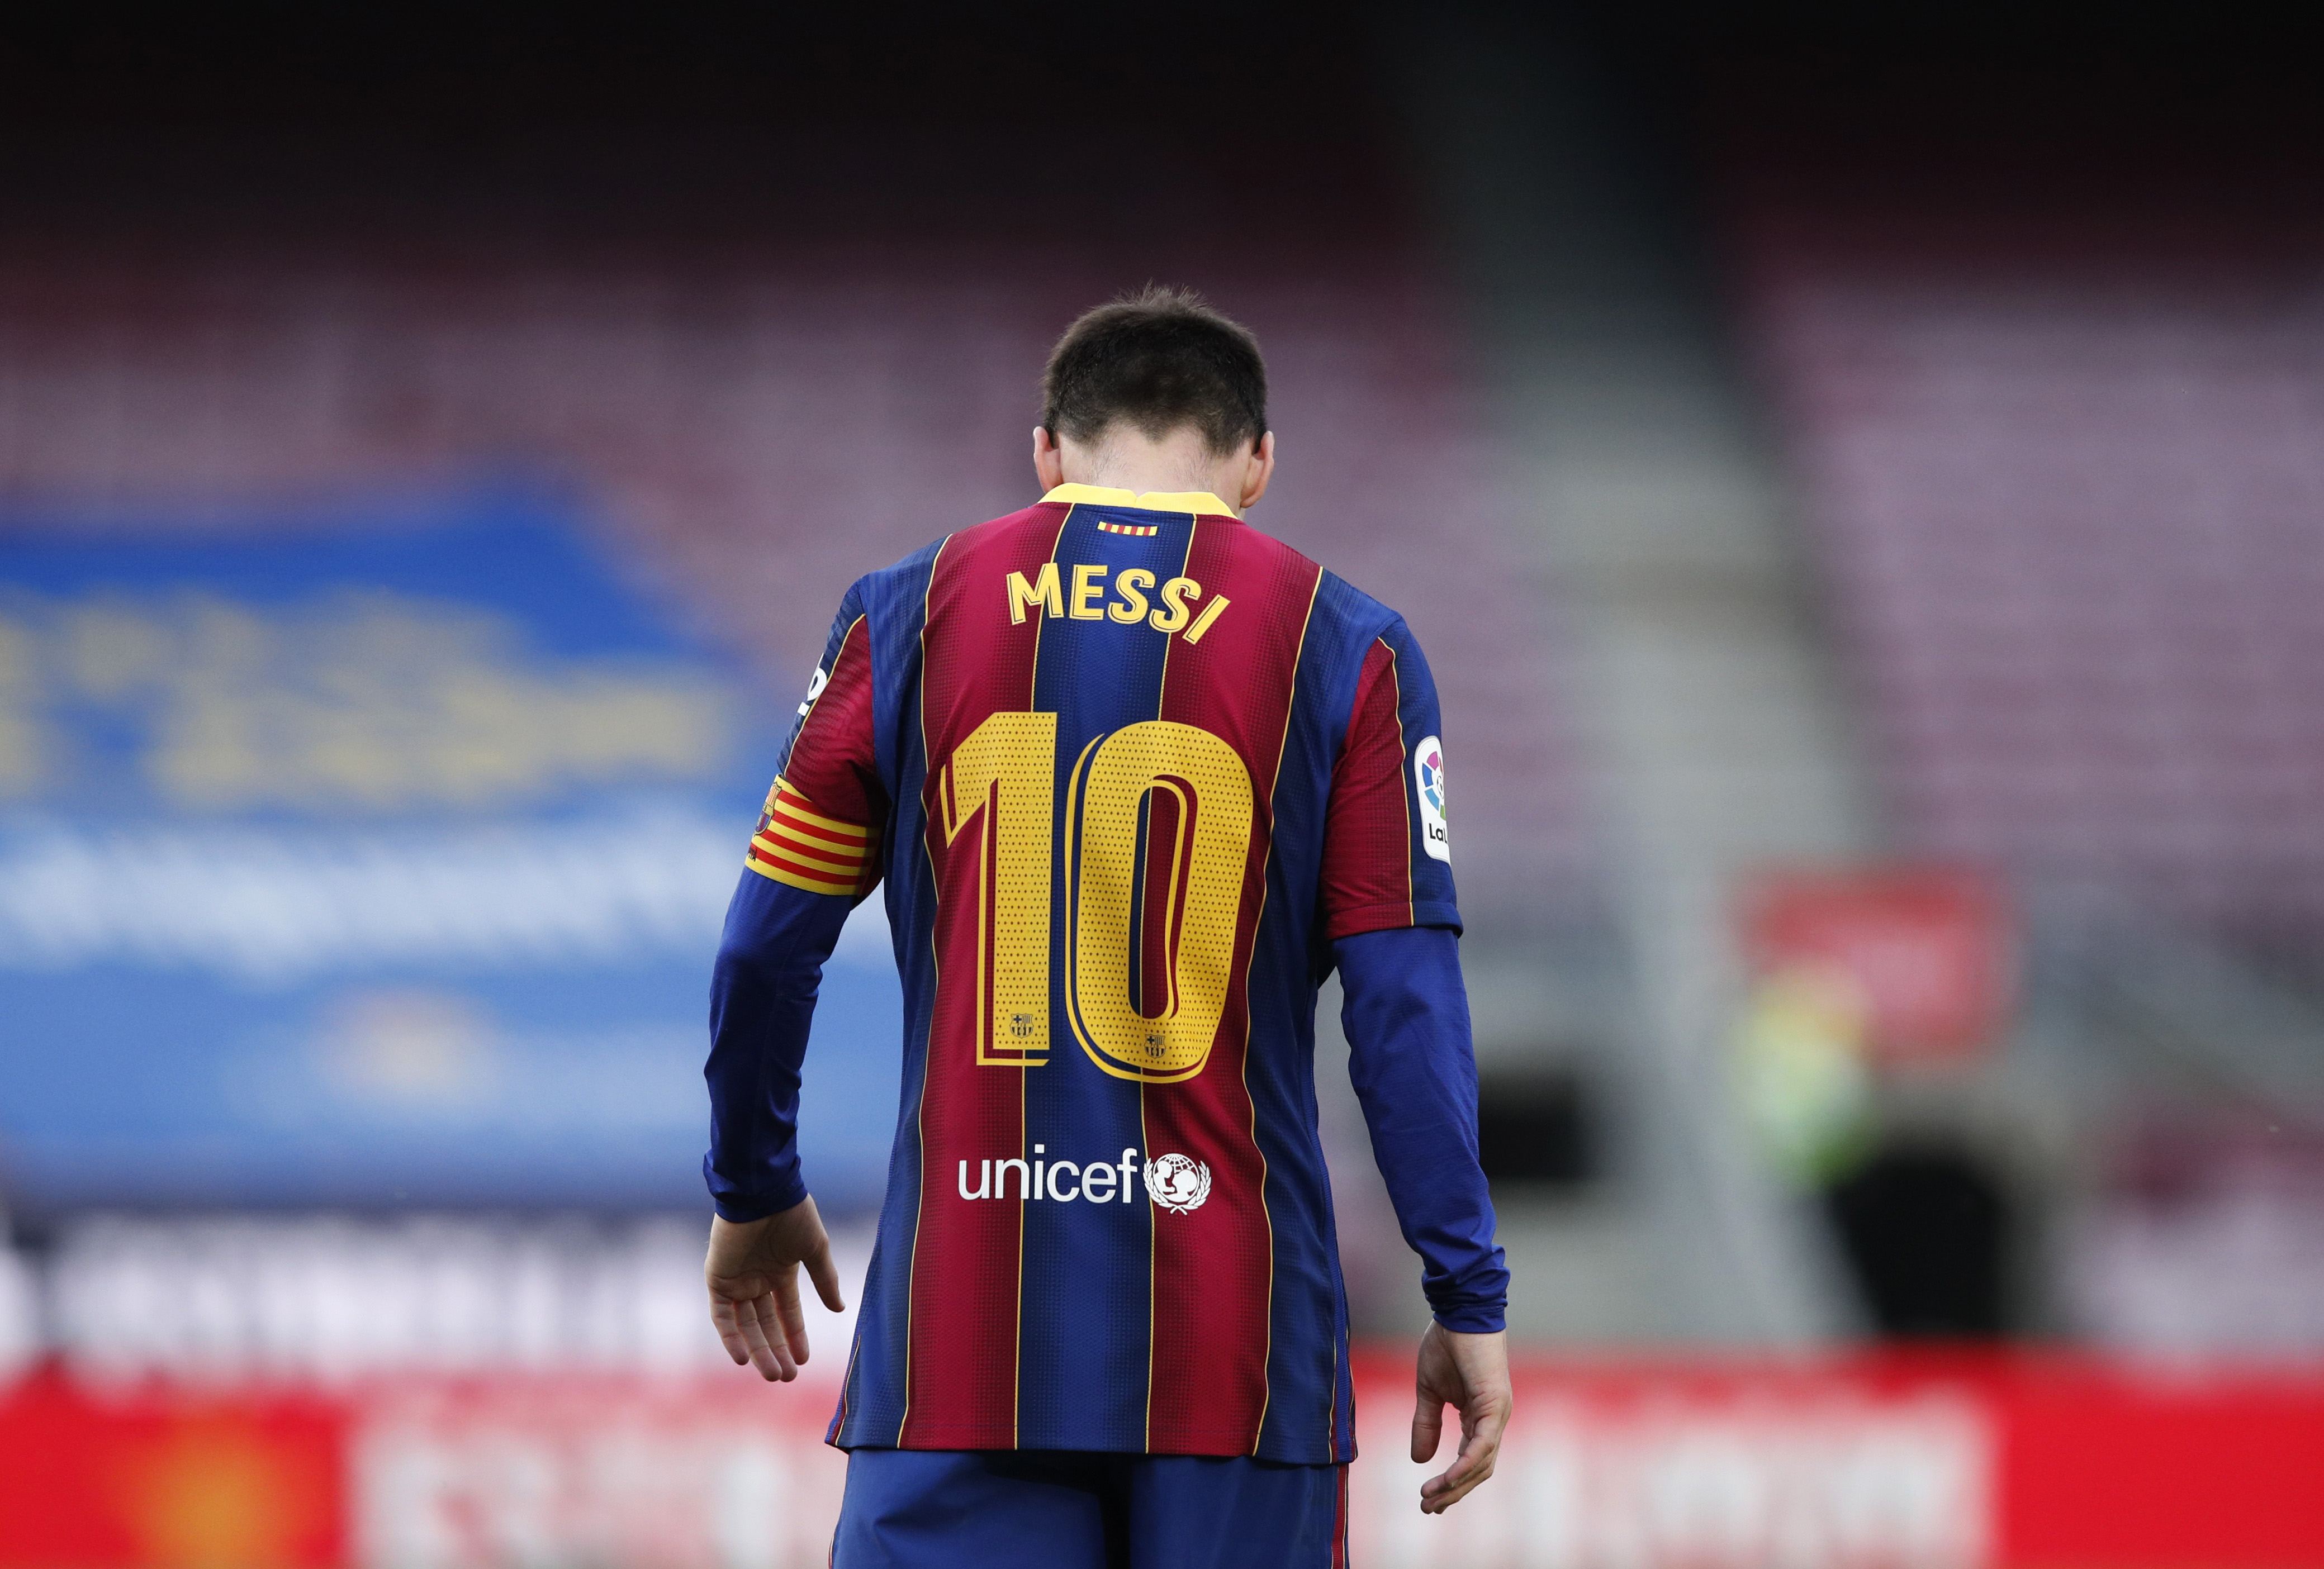 Messi to leave Barcelona due to 'financial obstacles' -club statement    Reuters